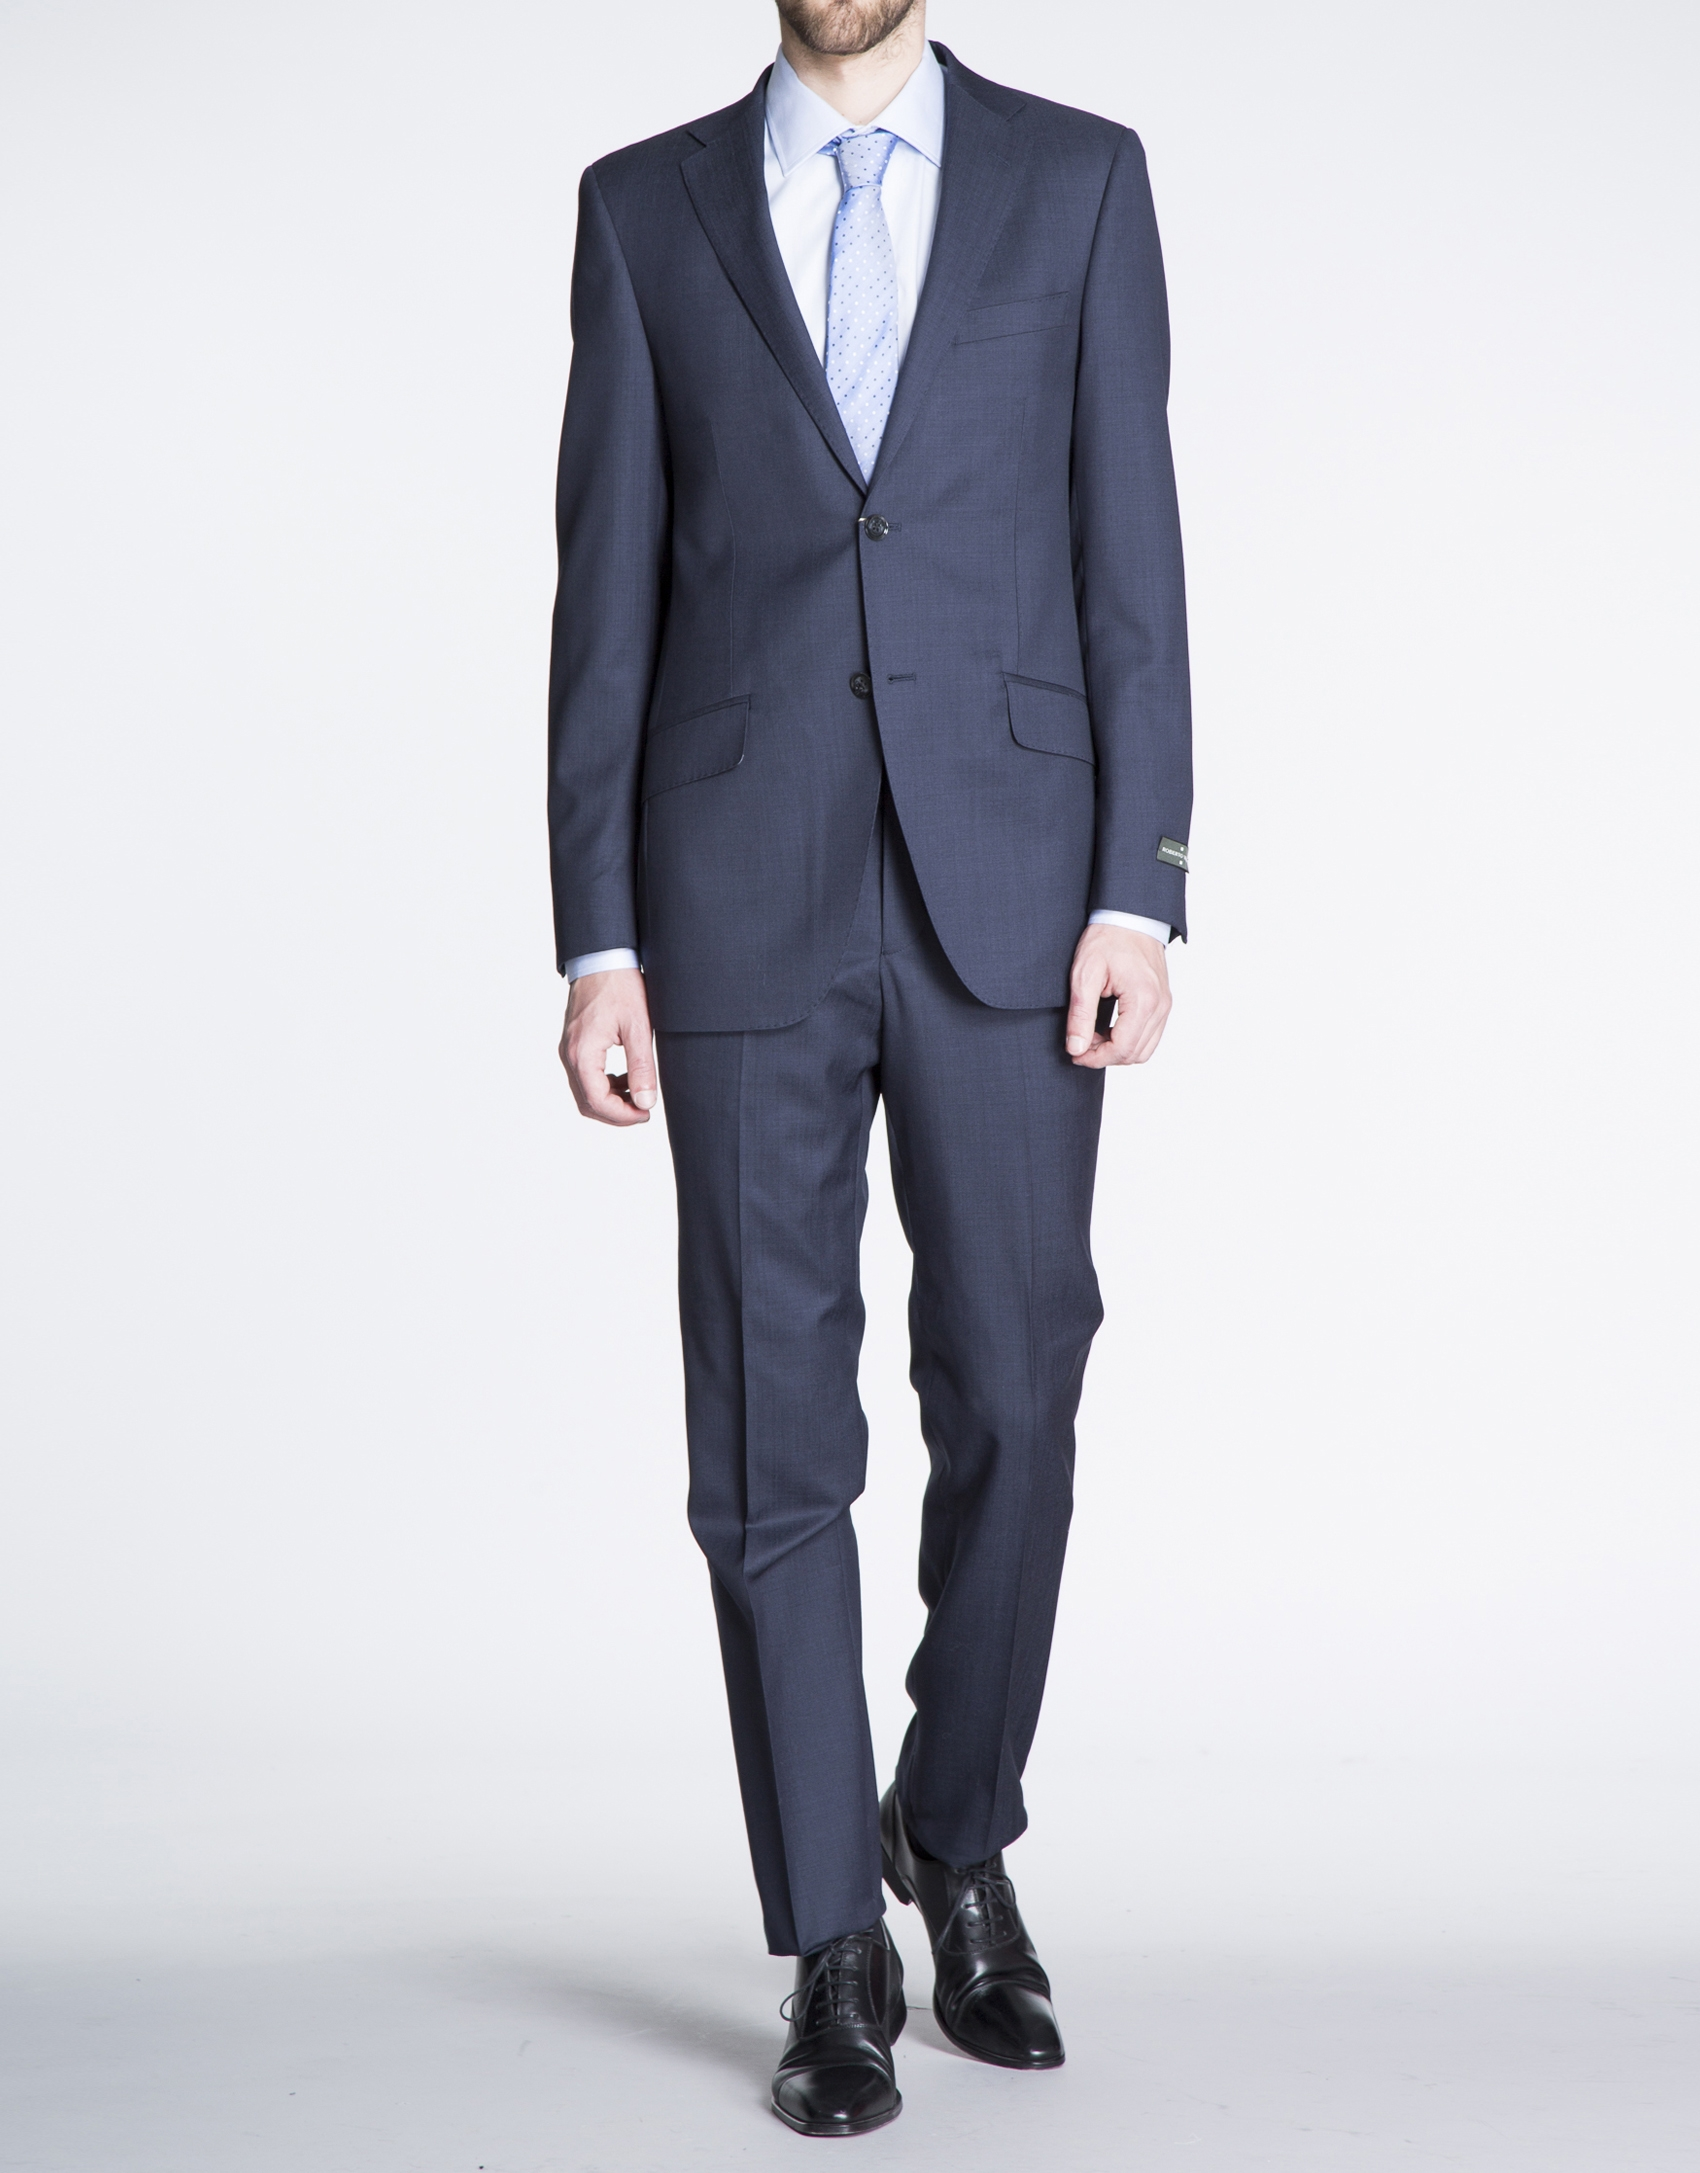 Navy blue suit, fine appearance, details in place,quality zipper. Tommy Hilfiger Men's Two Button Stretch Performance Solid Suit. by Tommy Hilfiger. $ - $ $ $ 95 Prime. FREE Shipping on eligible orders. Some sizes/colors are Prime eligible. out of 5 stars